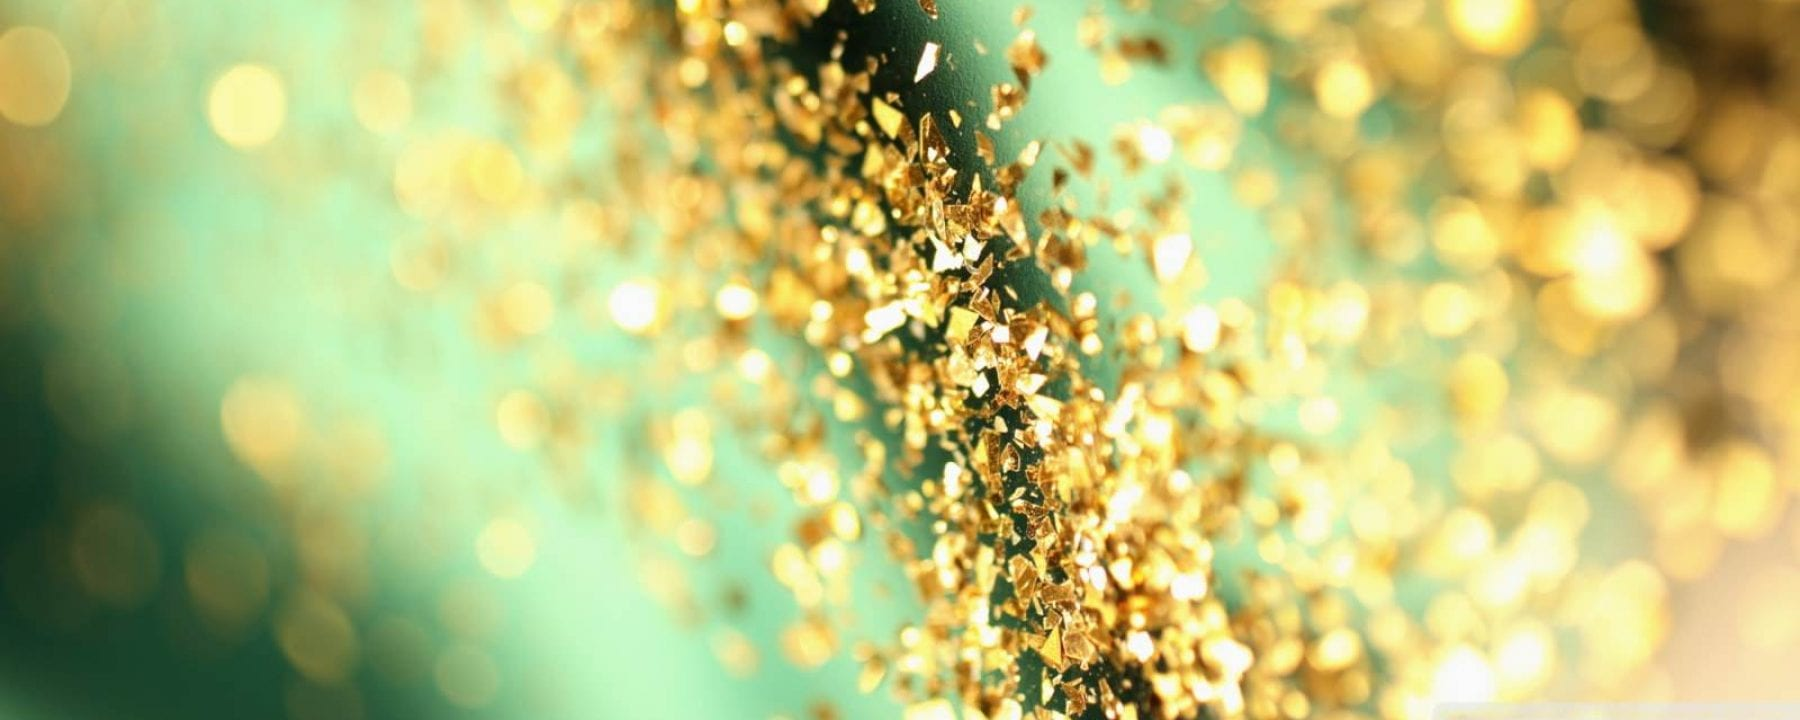 cropped-Glitter-Bokeh-Wallpaper-Background1 jpg – Glitter Rebel